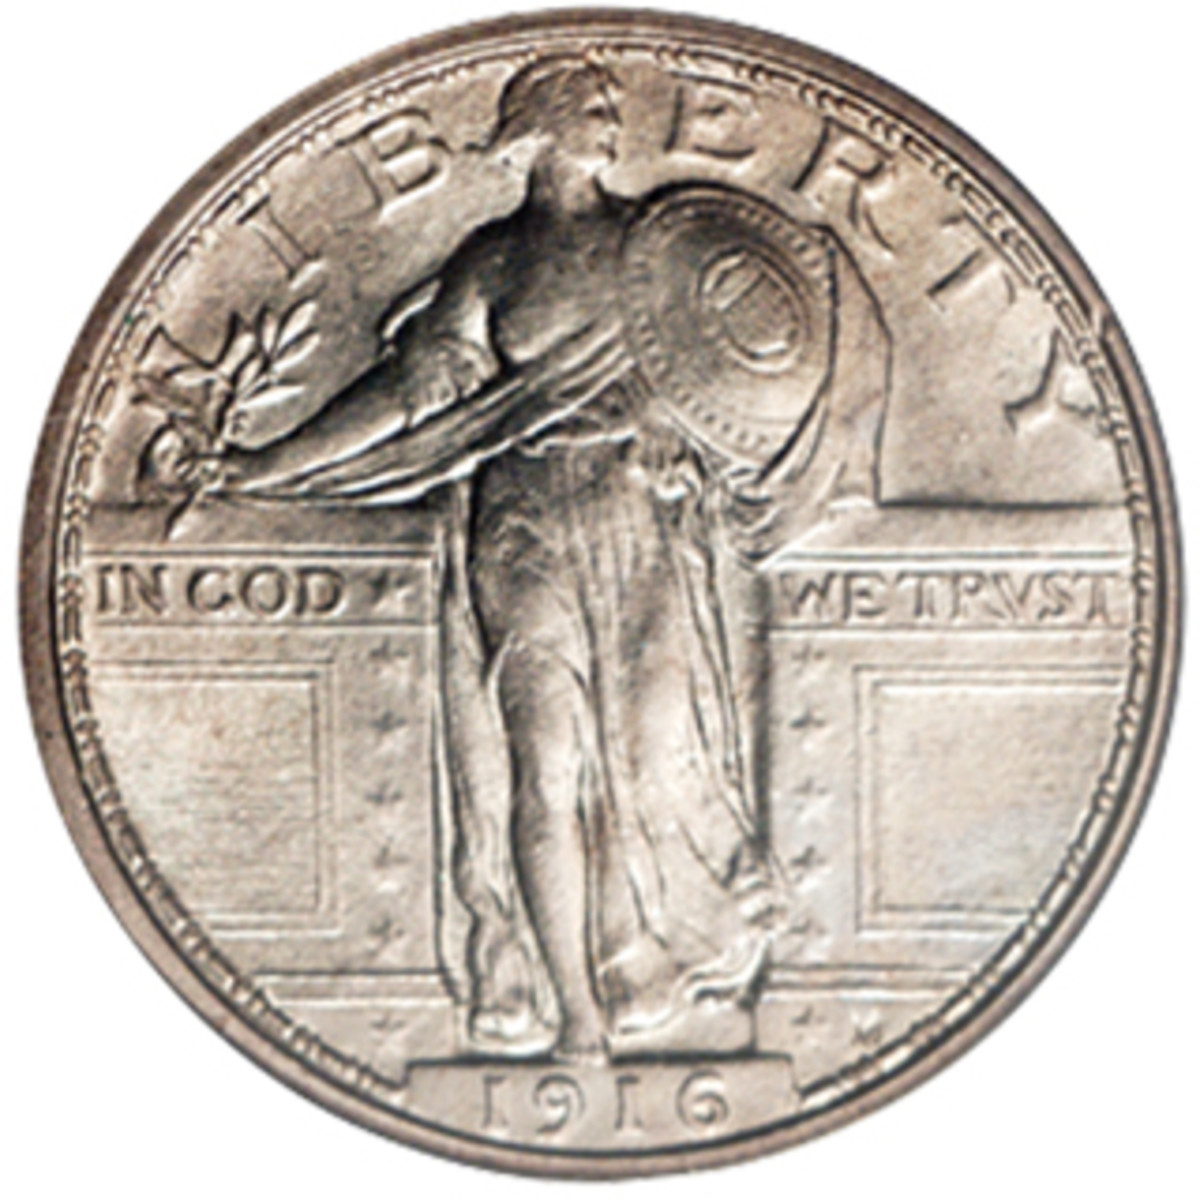 Are coin collectors coin collectors because they are near-sighted?